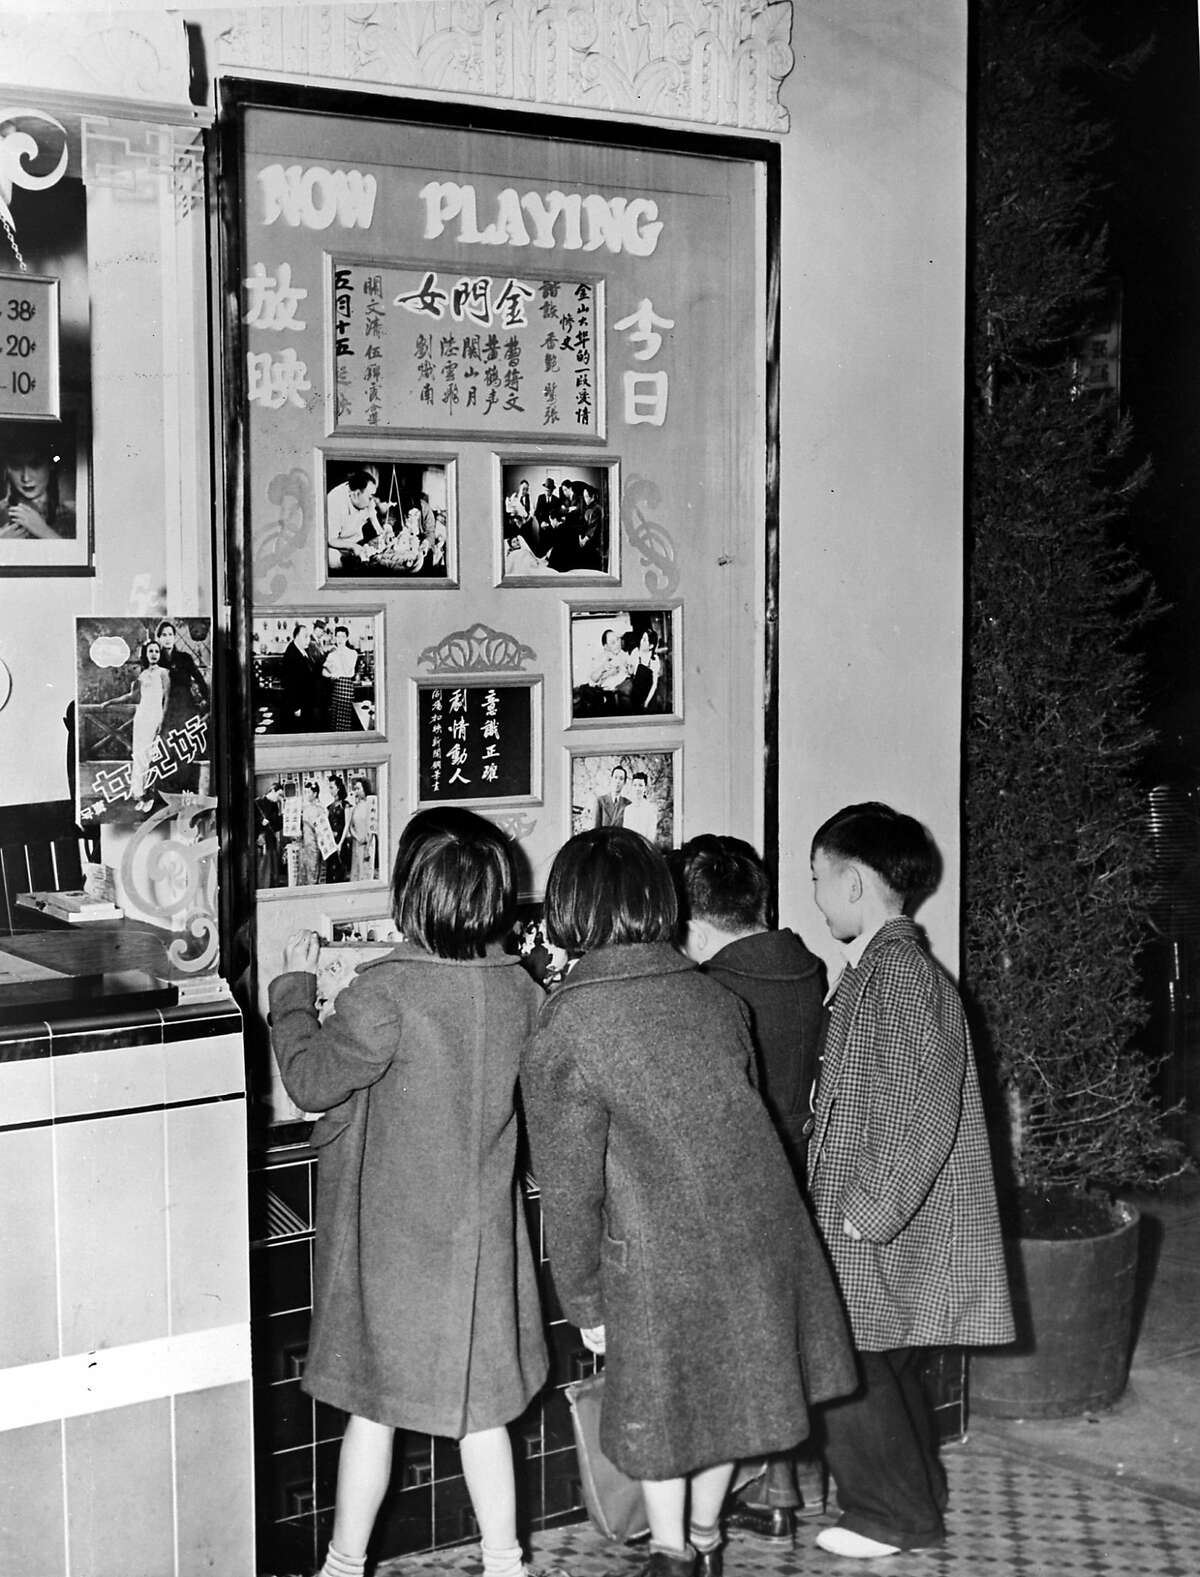 Kids checking out the Grandview Theater marquee in Chinatown 1944. From Arthur Dong's documentary